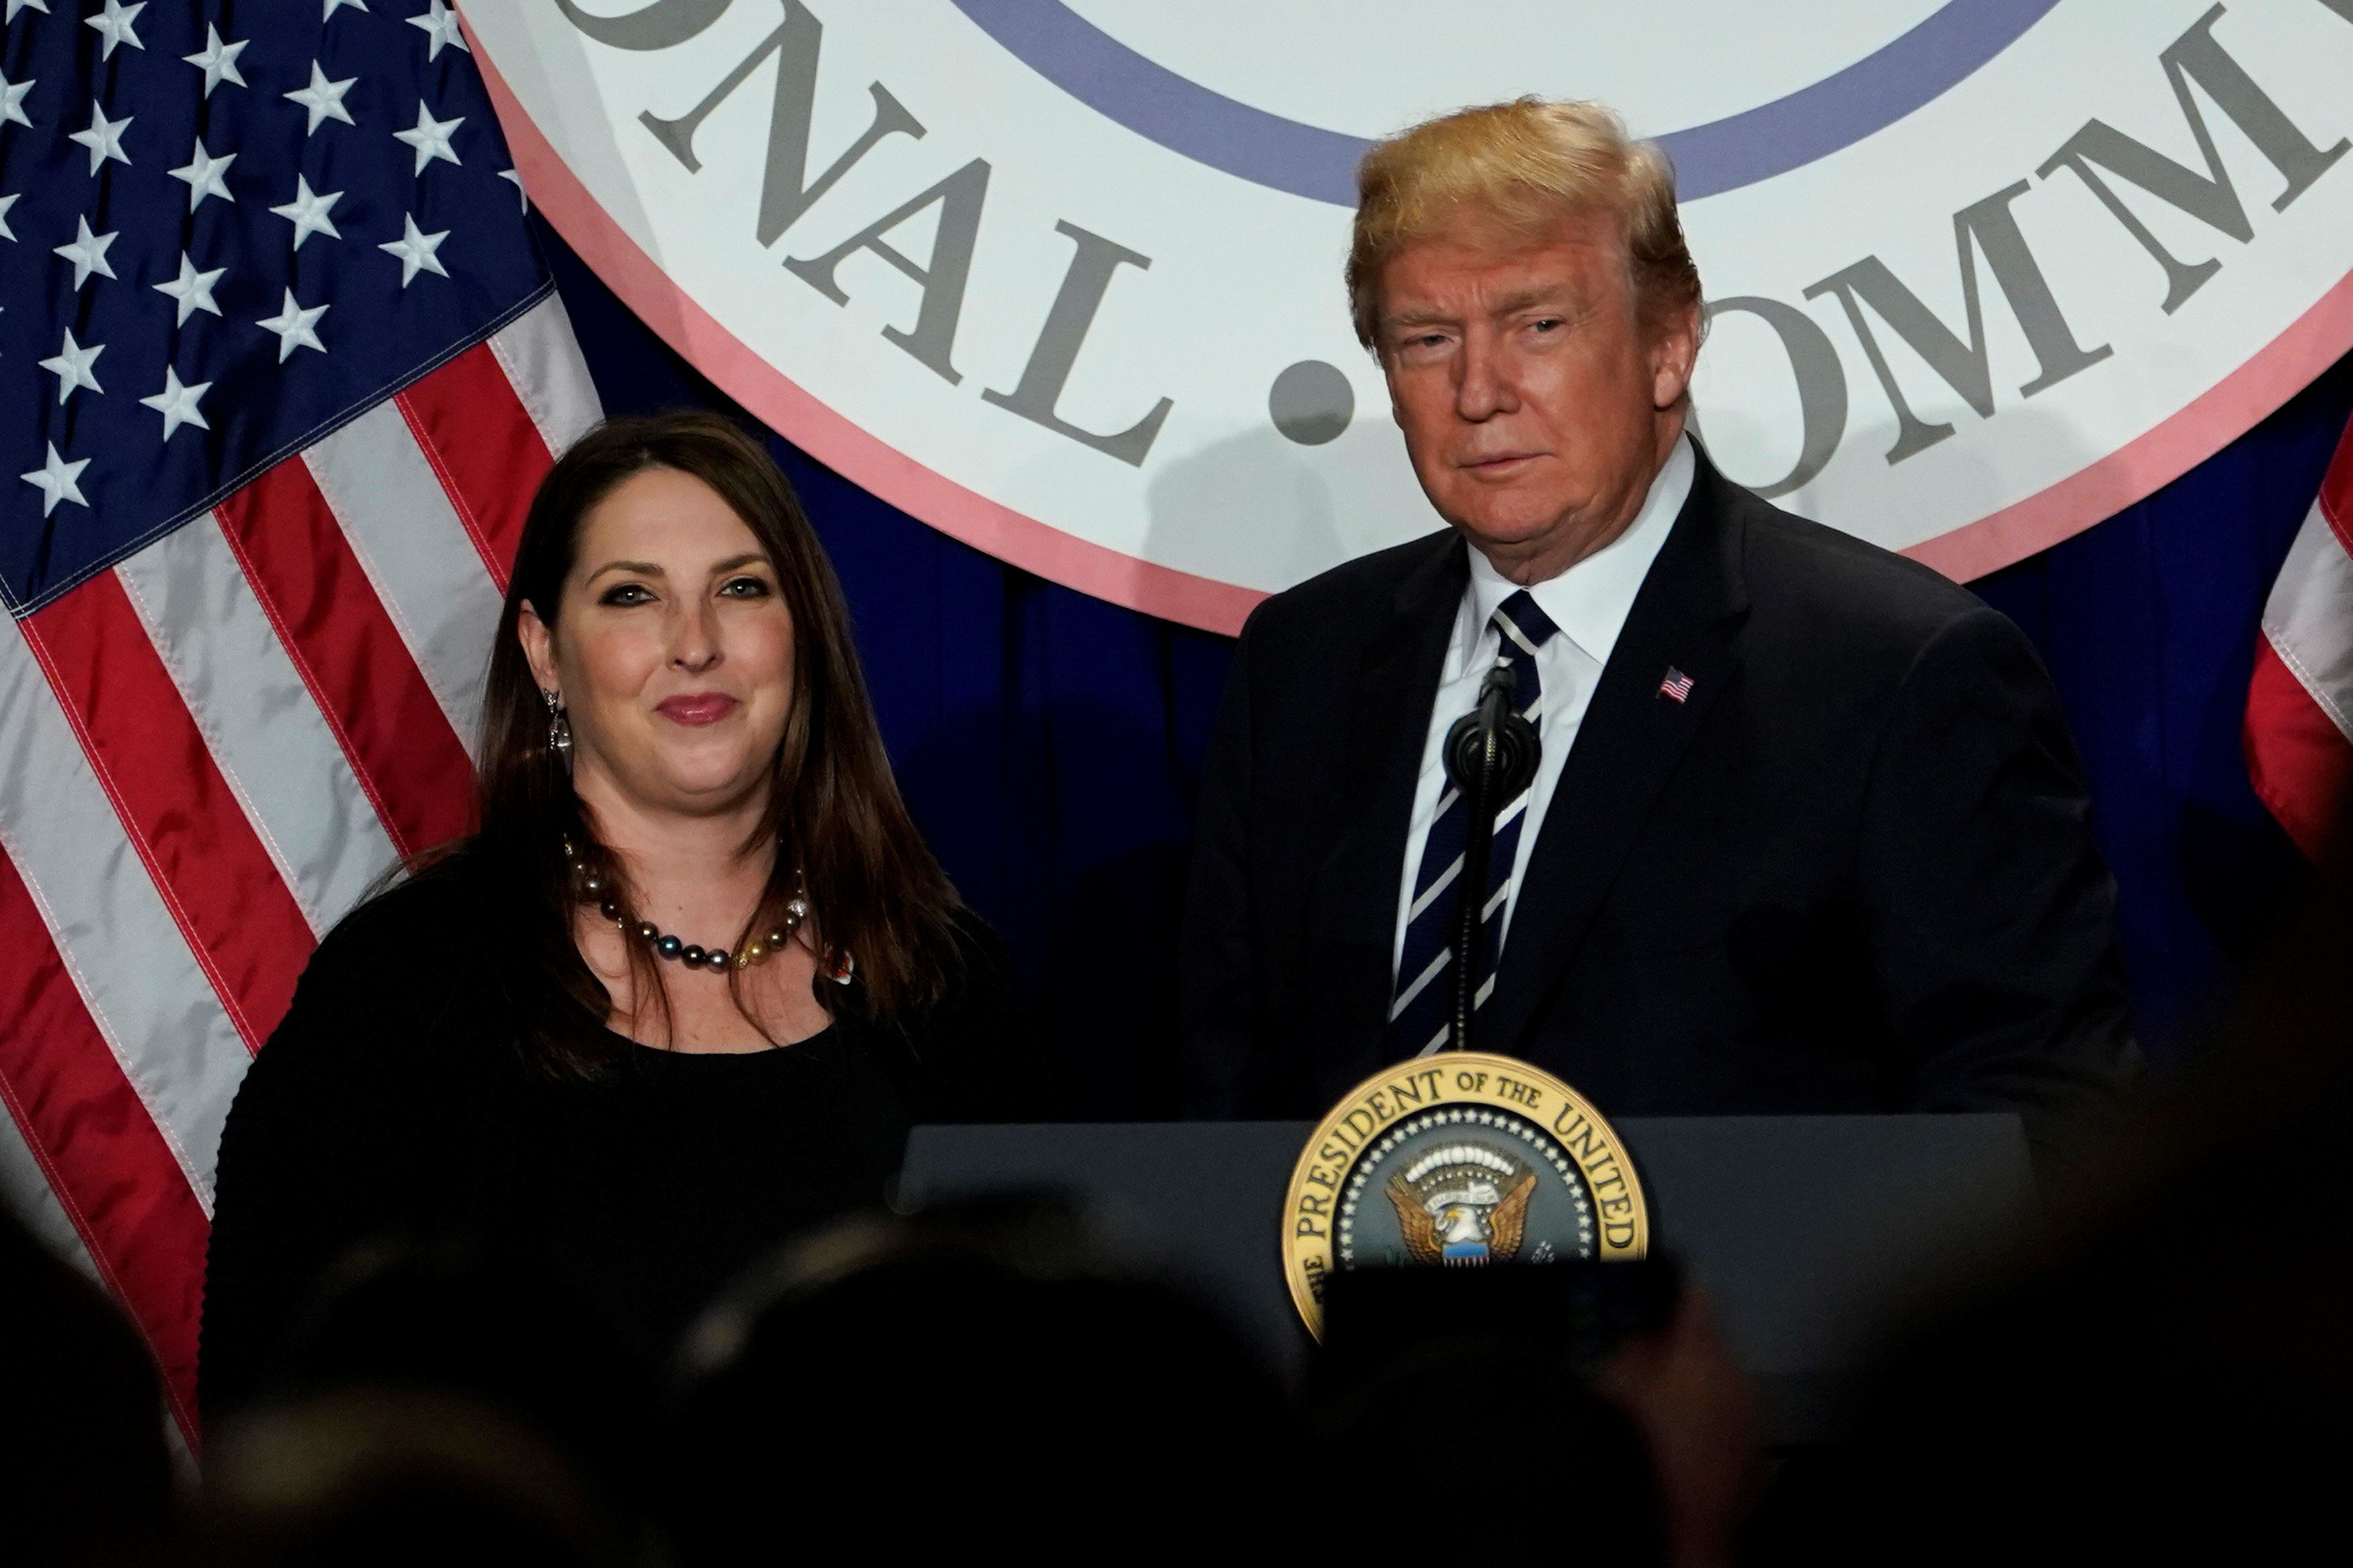 RNC chairwoman Ronna Romney McDaniel (left) introducing President Donald Trump (right) at the Republican National Committee's